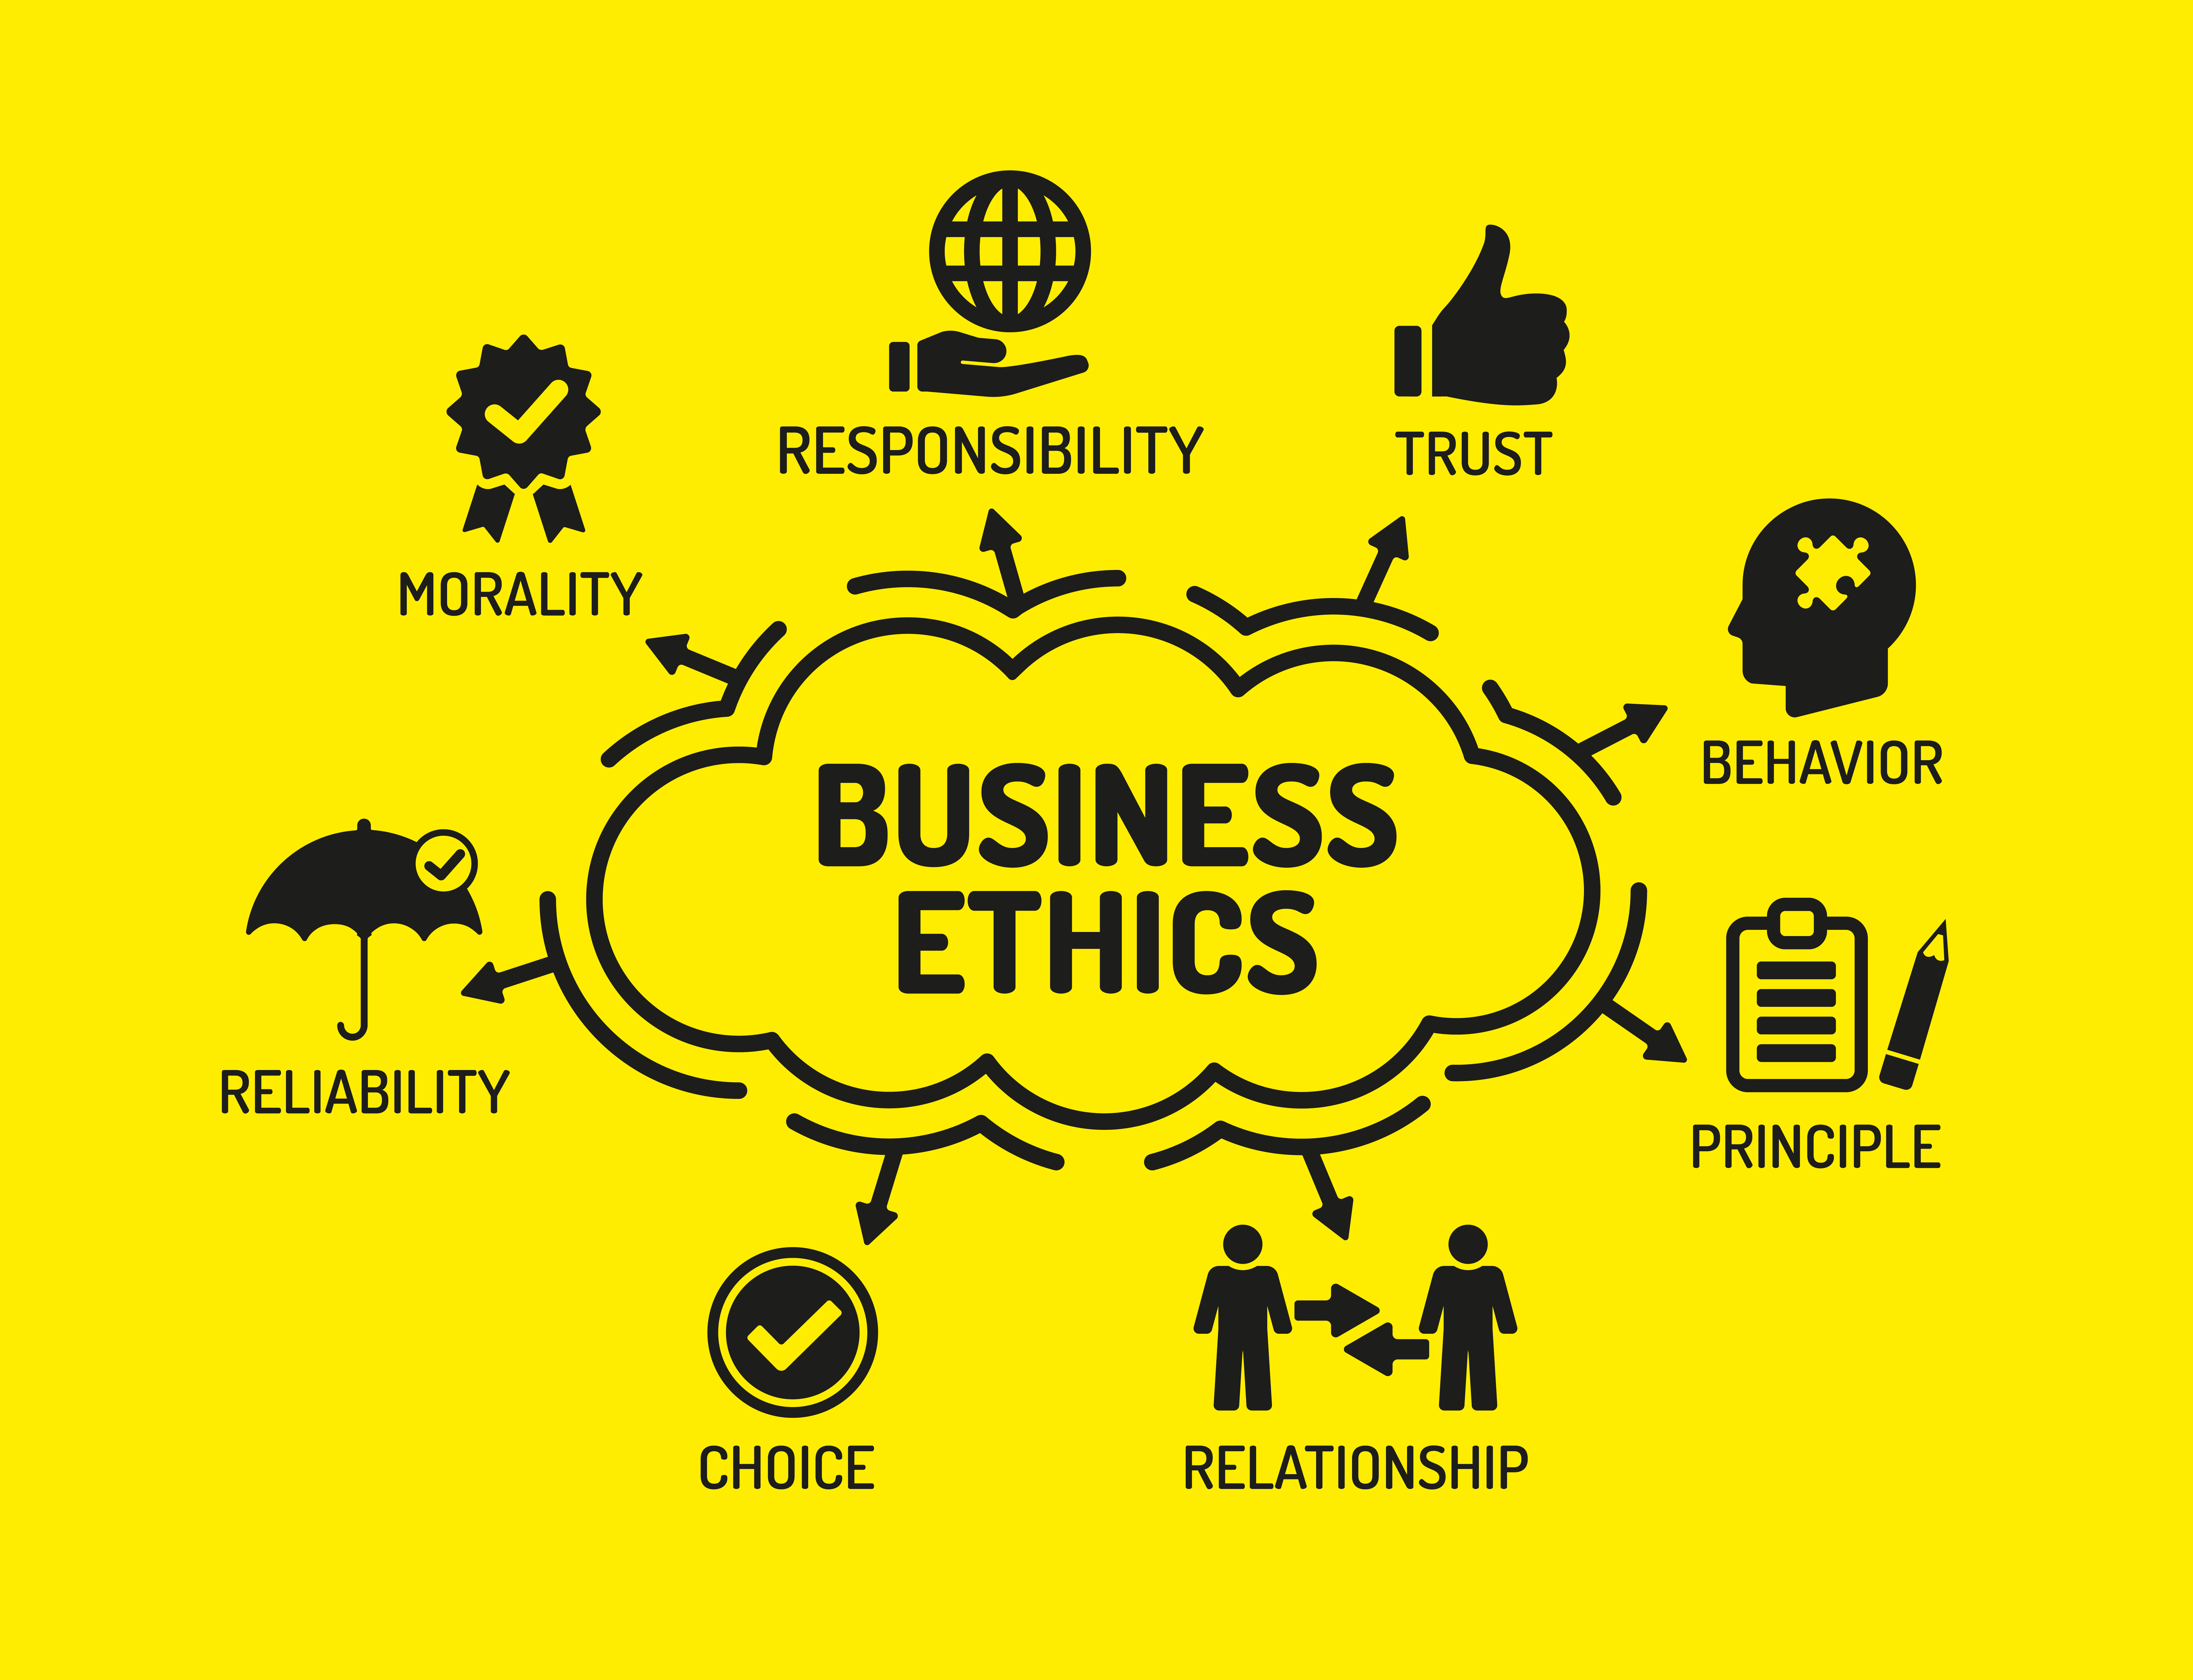 ceo ethical behavior Add it all up, and you get greater scrutiny of ceo behavior this suggests that awarding joint titles to the ceo increases the risk of ethical lapses.